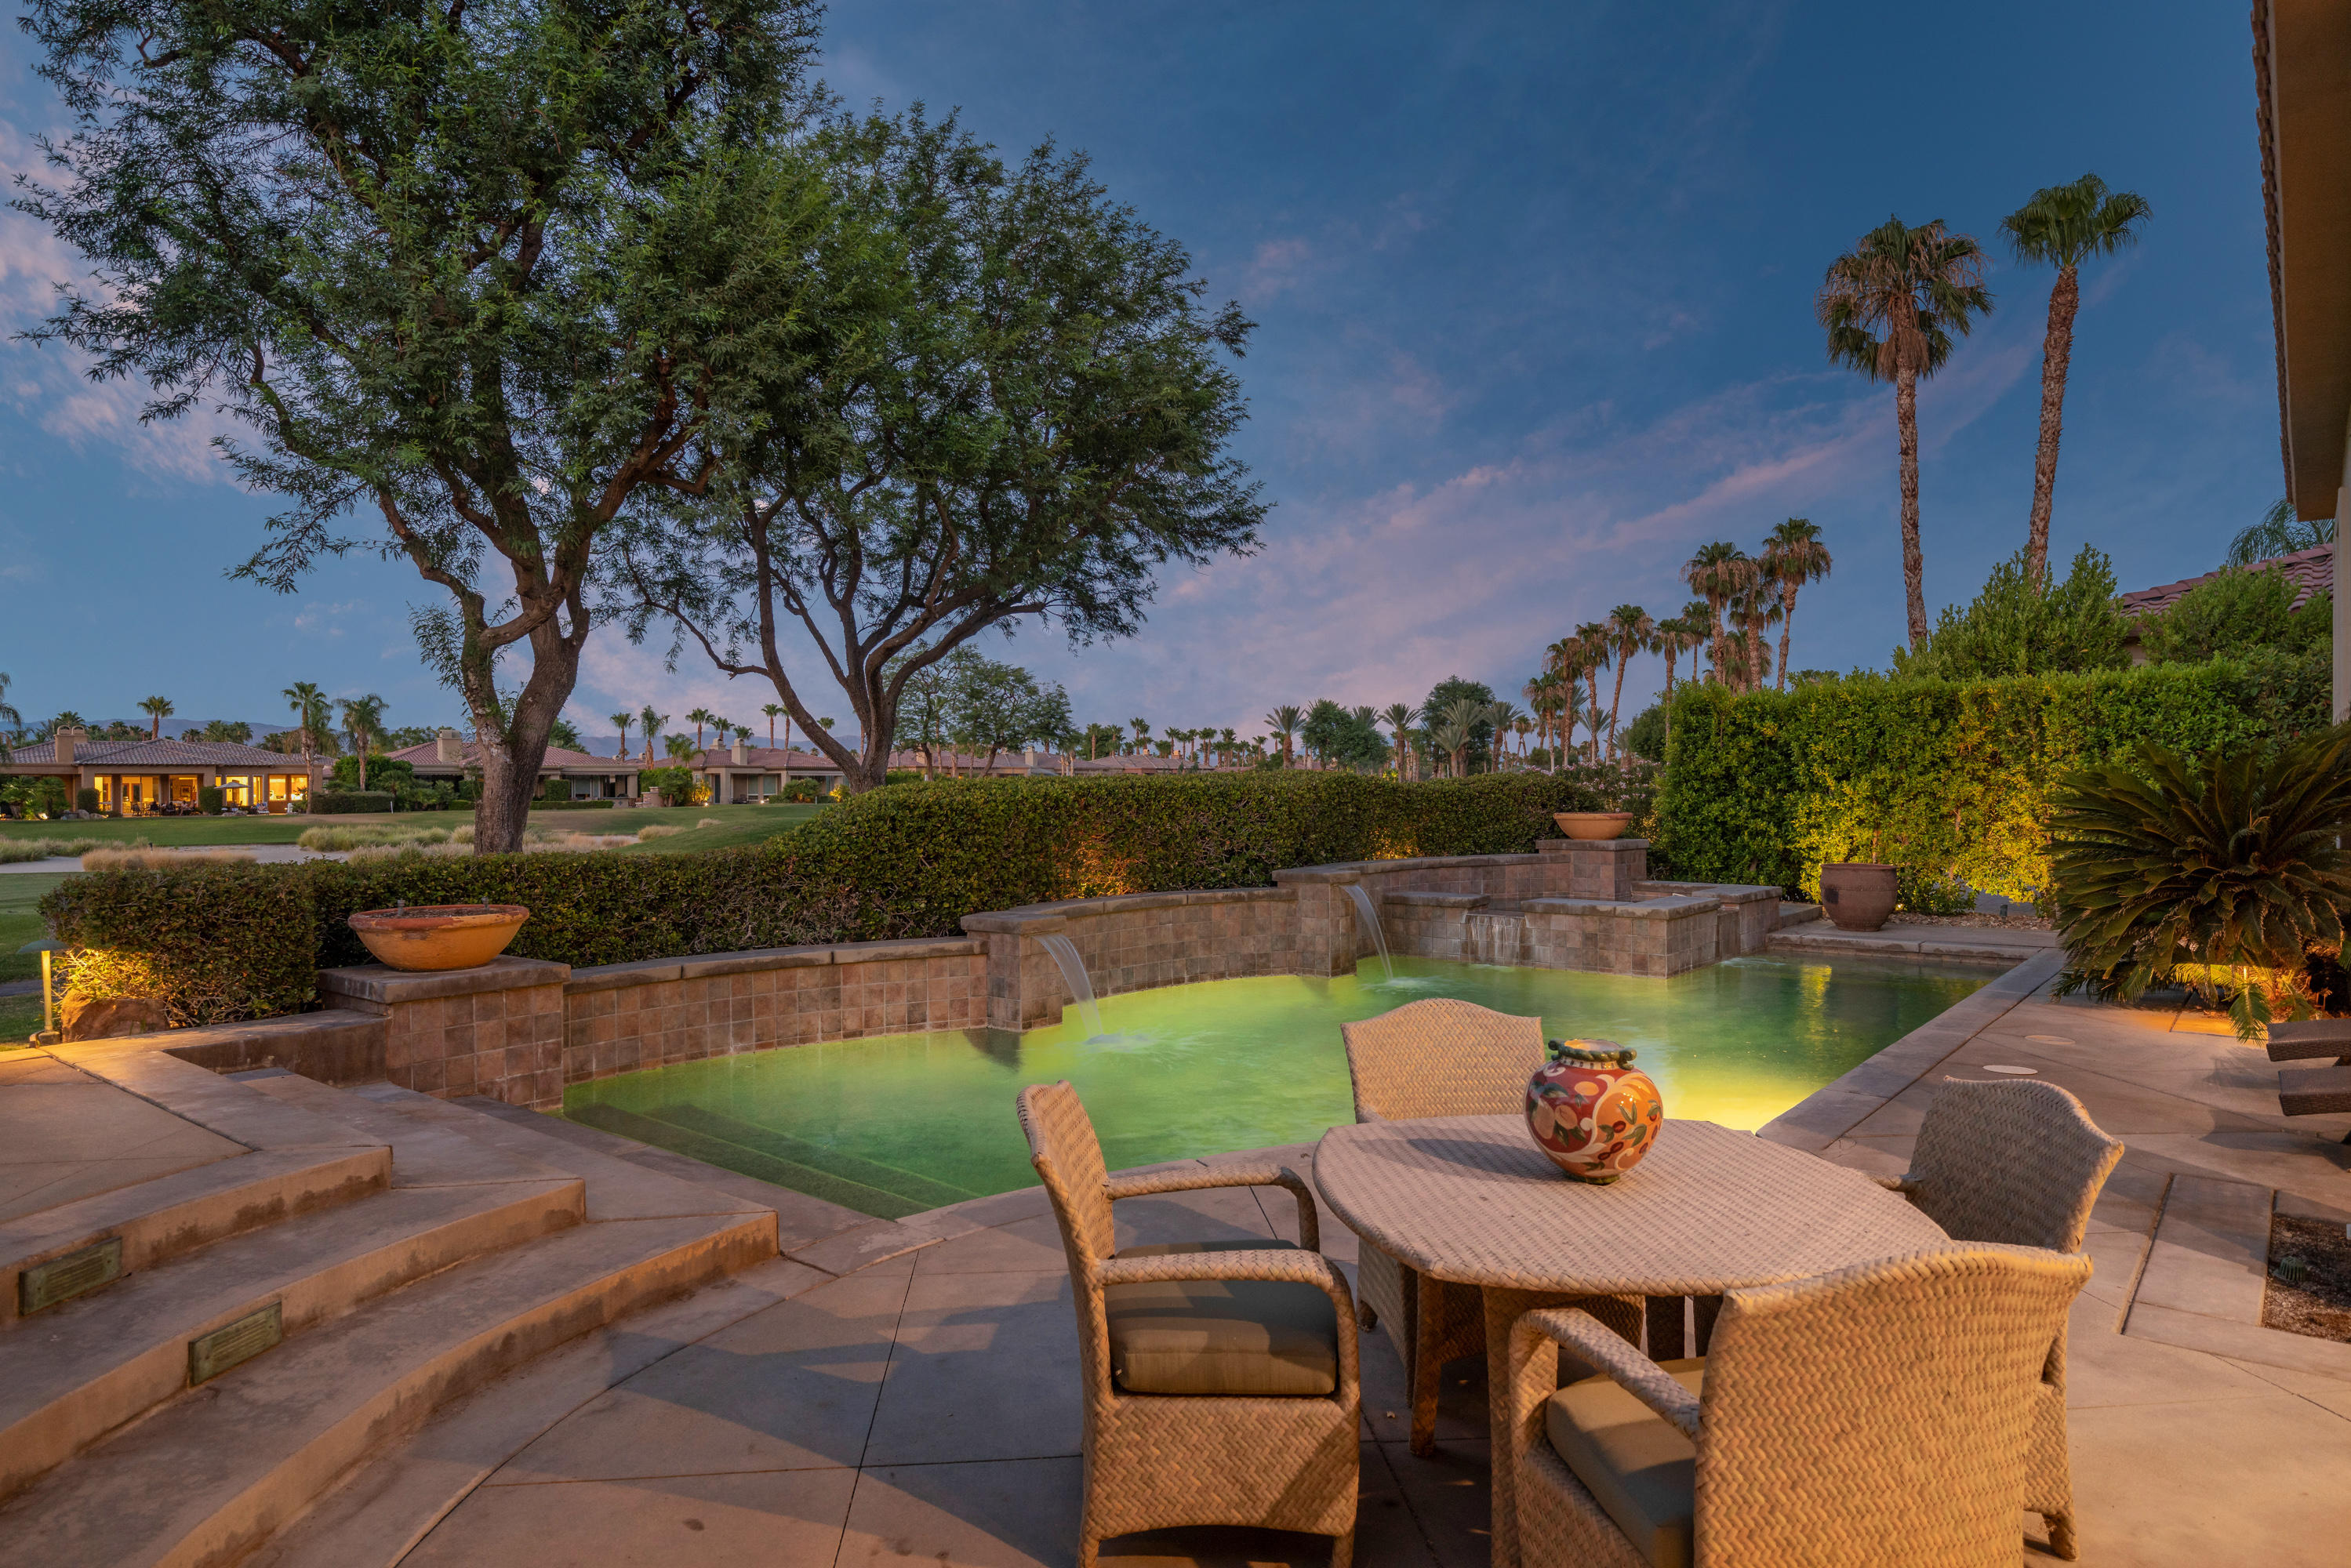 80544 Spanish Bay, La Quinta, California 92253, 3 Bedrooms Bedrooms, ,4 BathroomsBathrooms,Residential,For Sale,80544 Spanish Bay,219045573